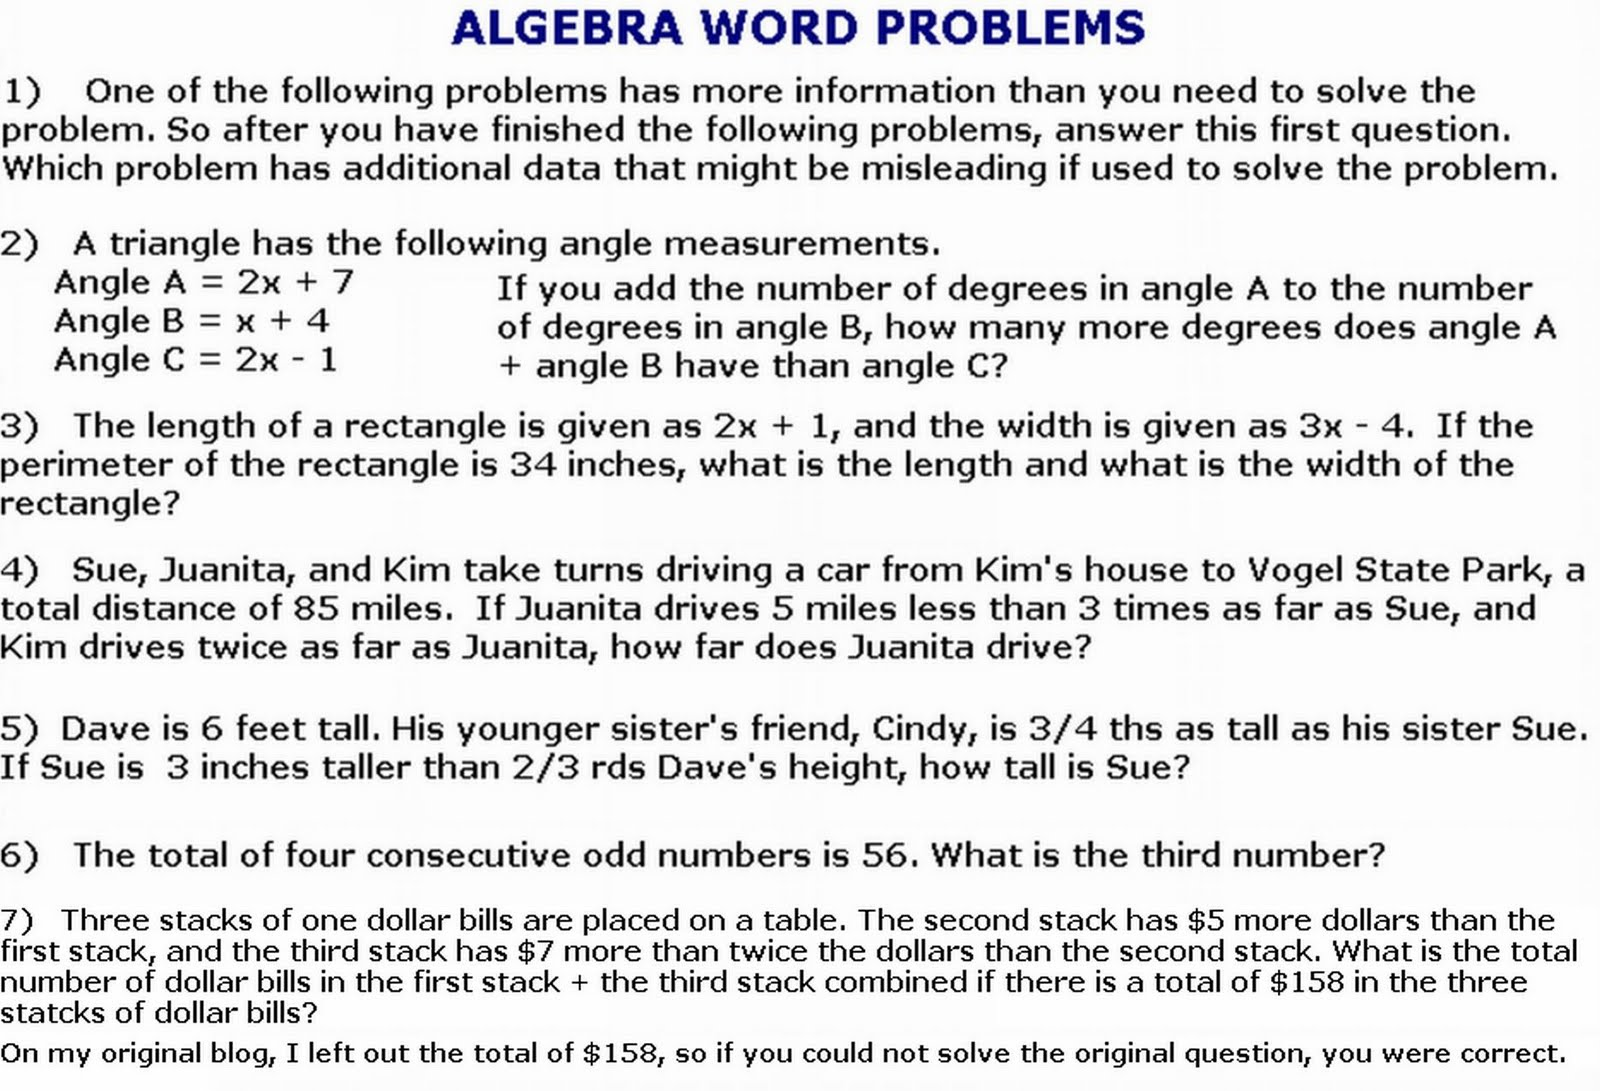 Cobb Adult Ed Math Algebra Word Problems